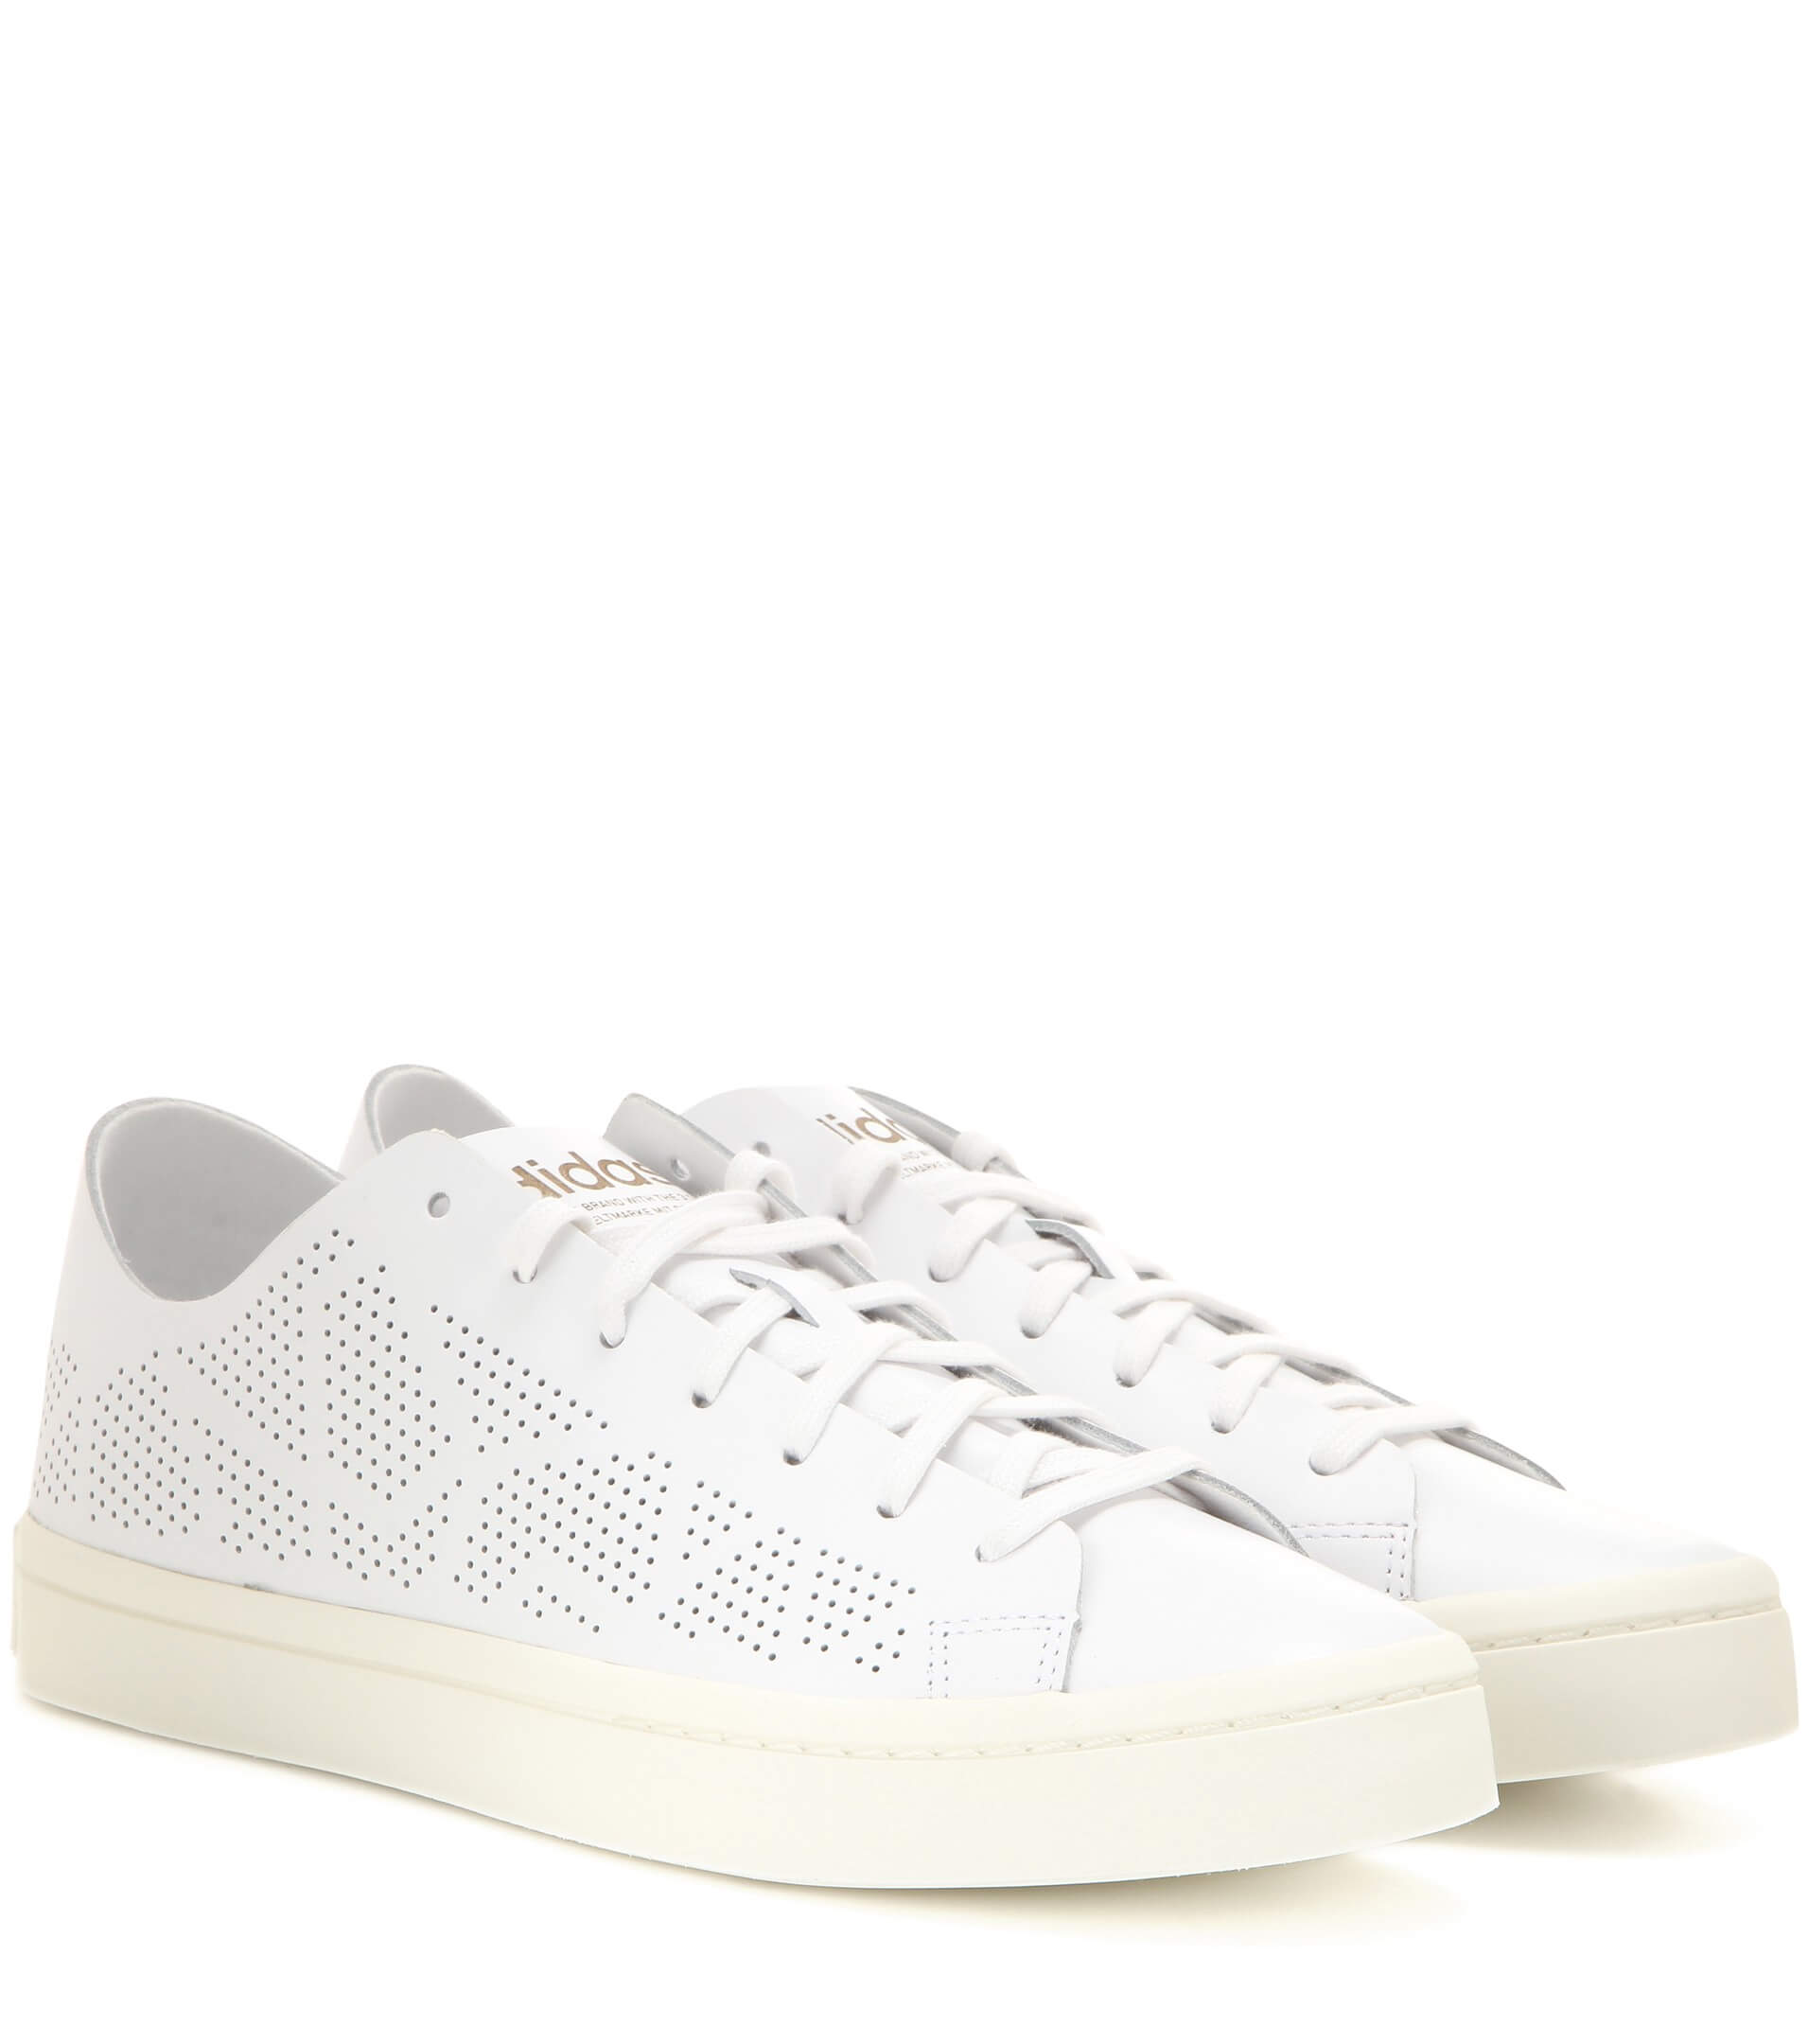 Court Vantage TF Perforated Leather | Adidas